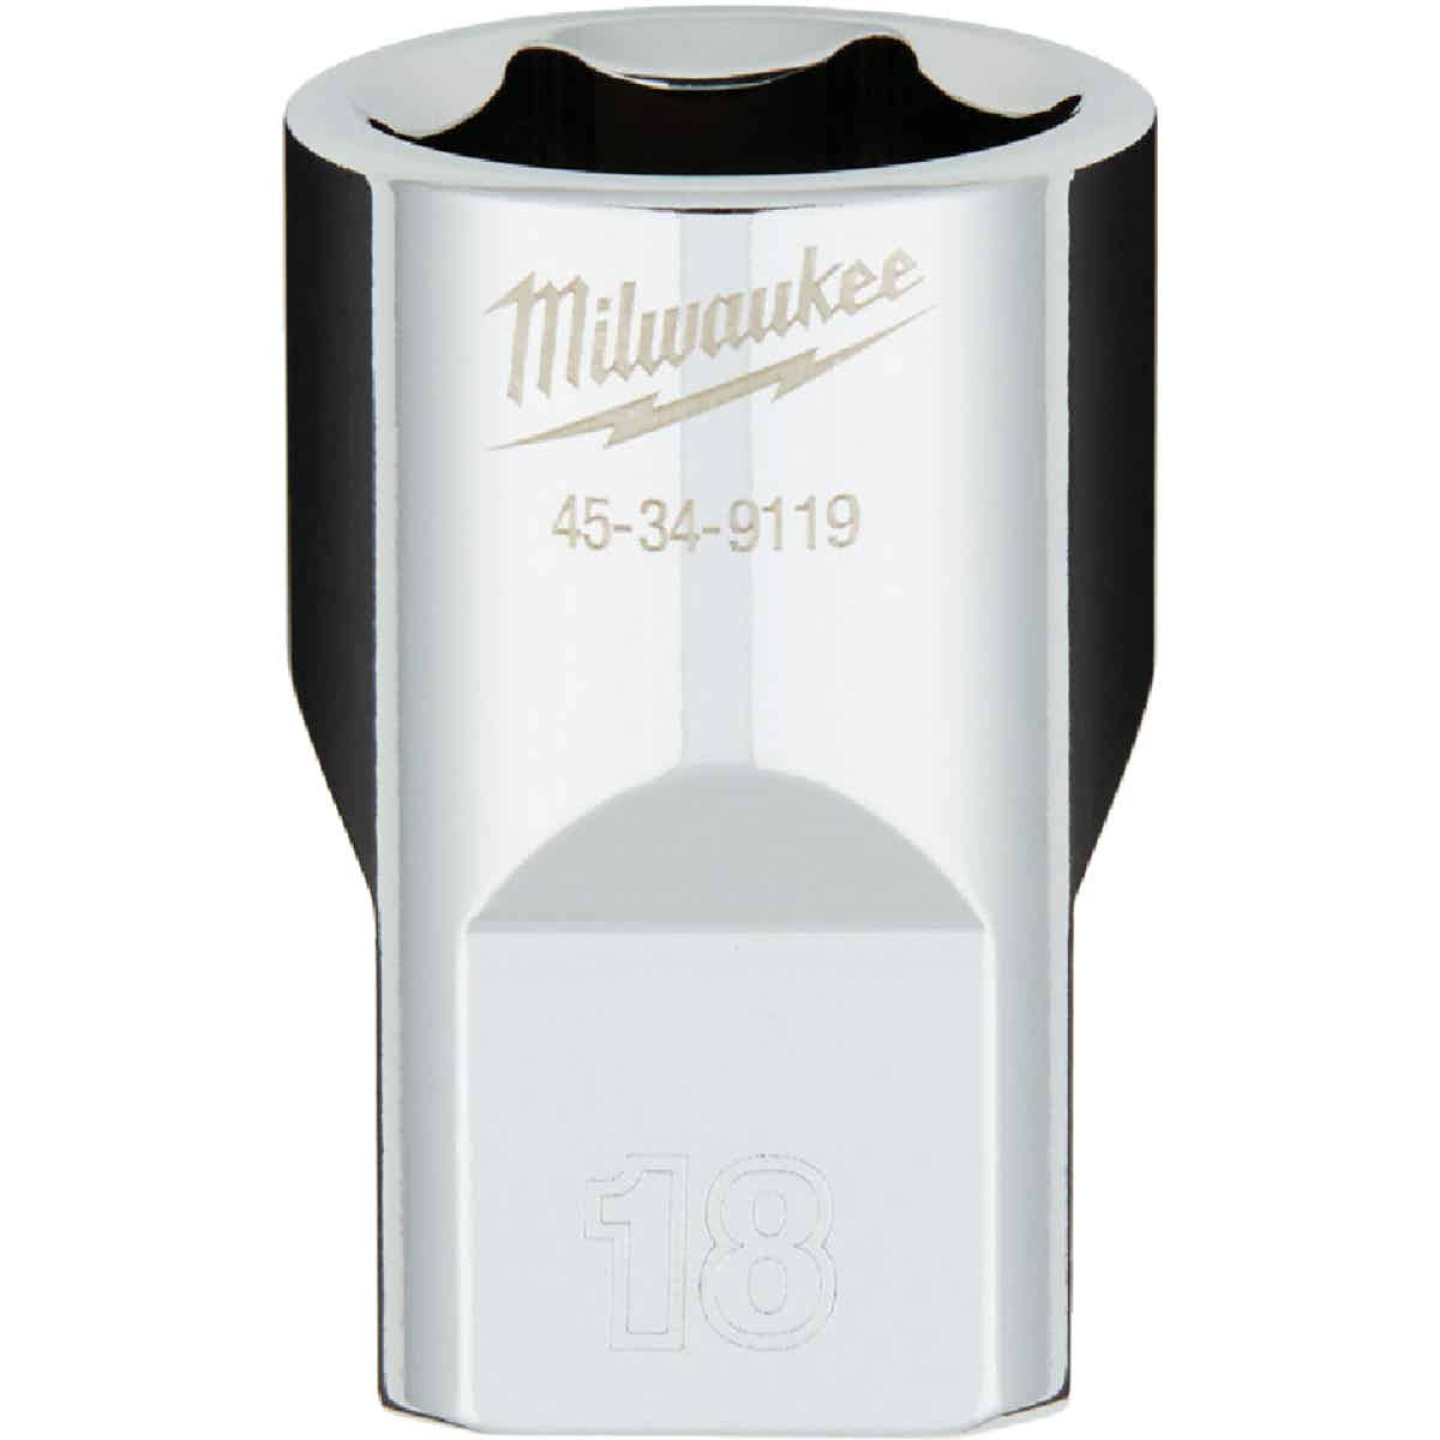 Milwaukee 1/2 In. Drive 18 mm 6-Point Shallow Metric Socket with FOUR FLAT Sides Image 1